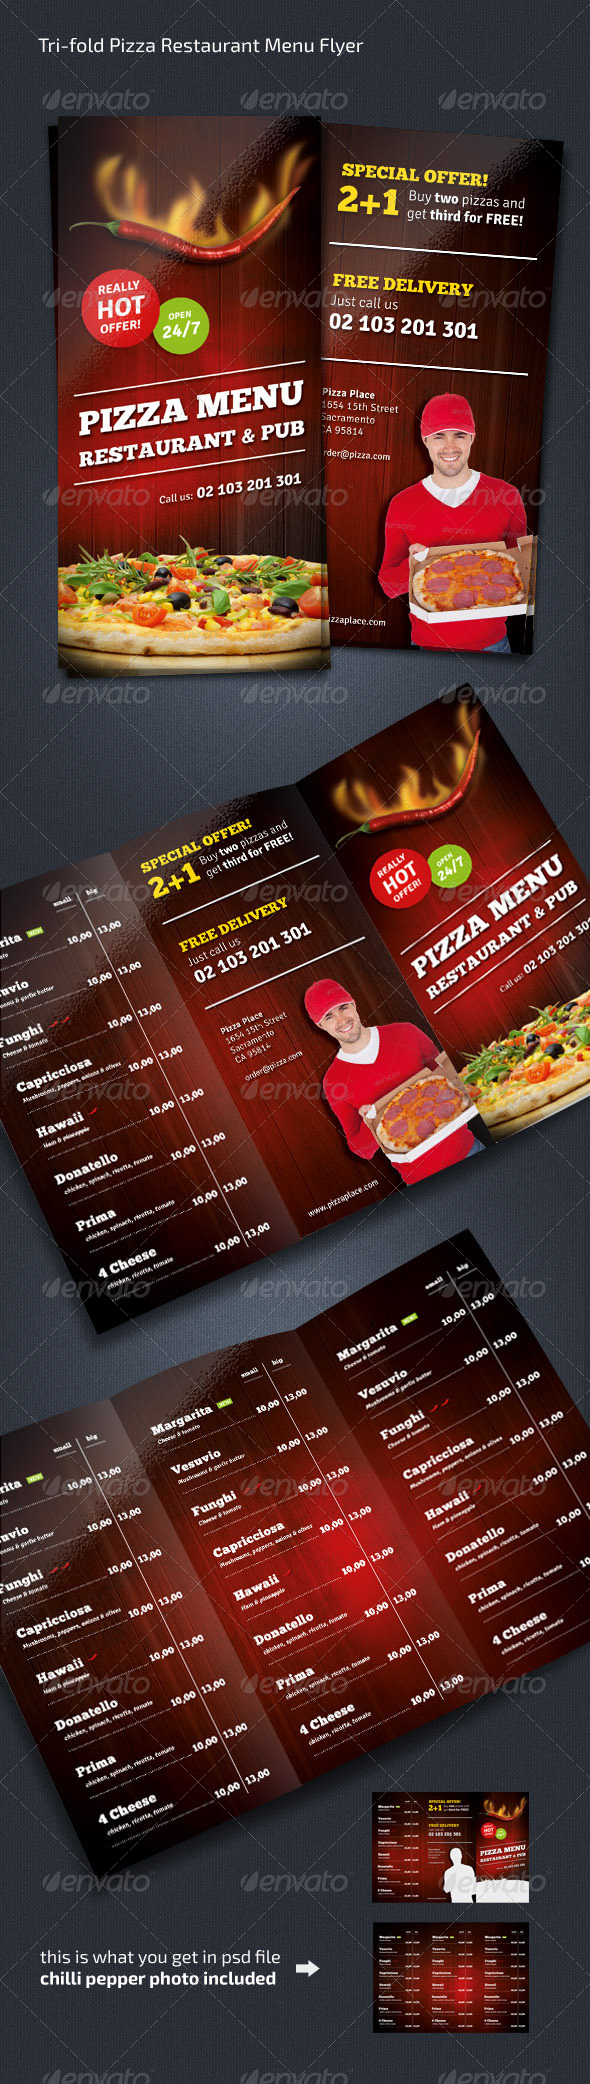 Pizza Restaurant Menu Flyer (Trifold)